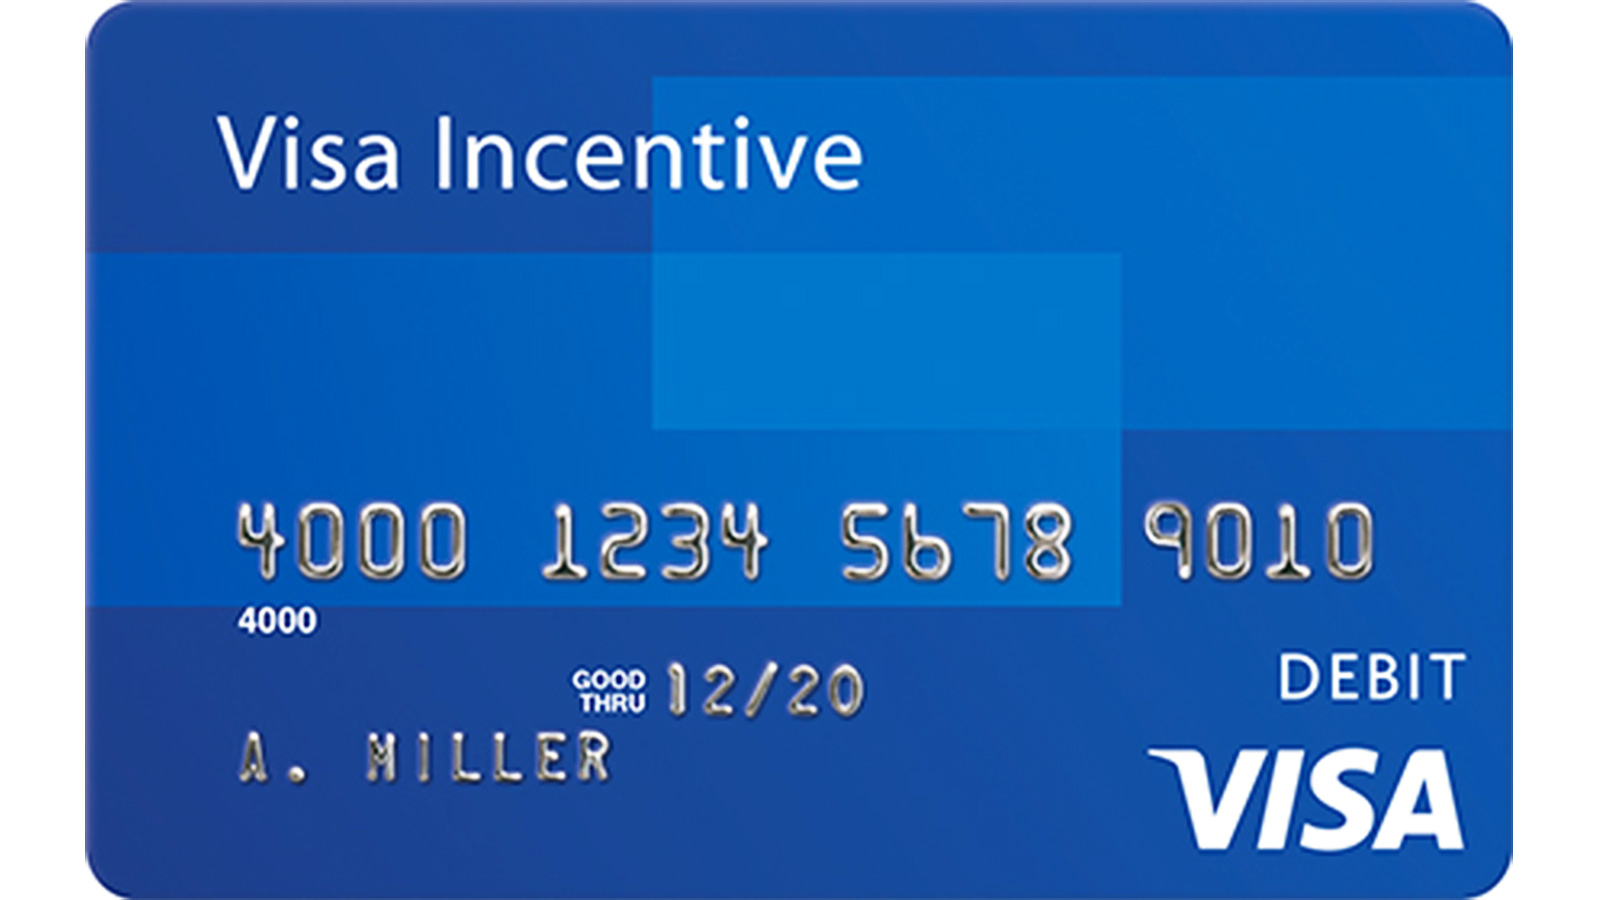 Visa Incentive Card